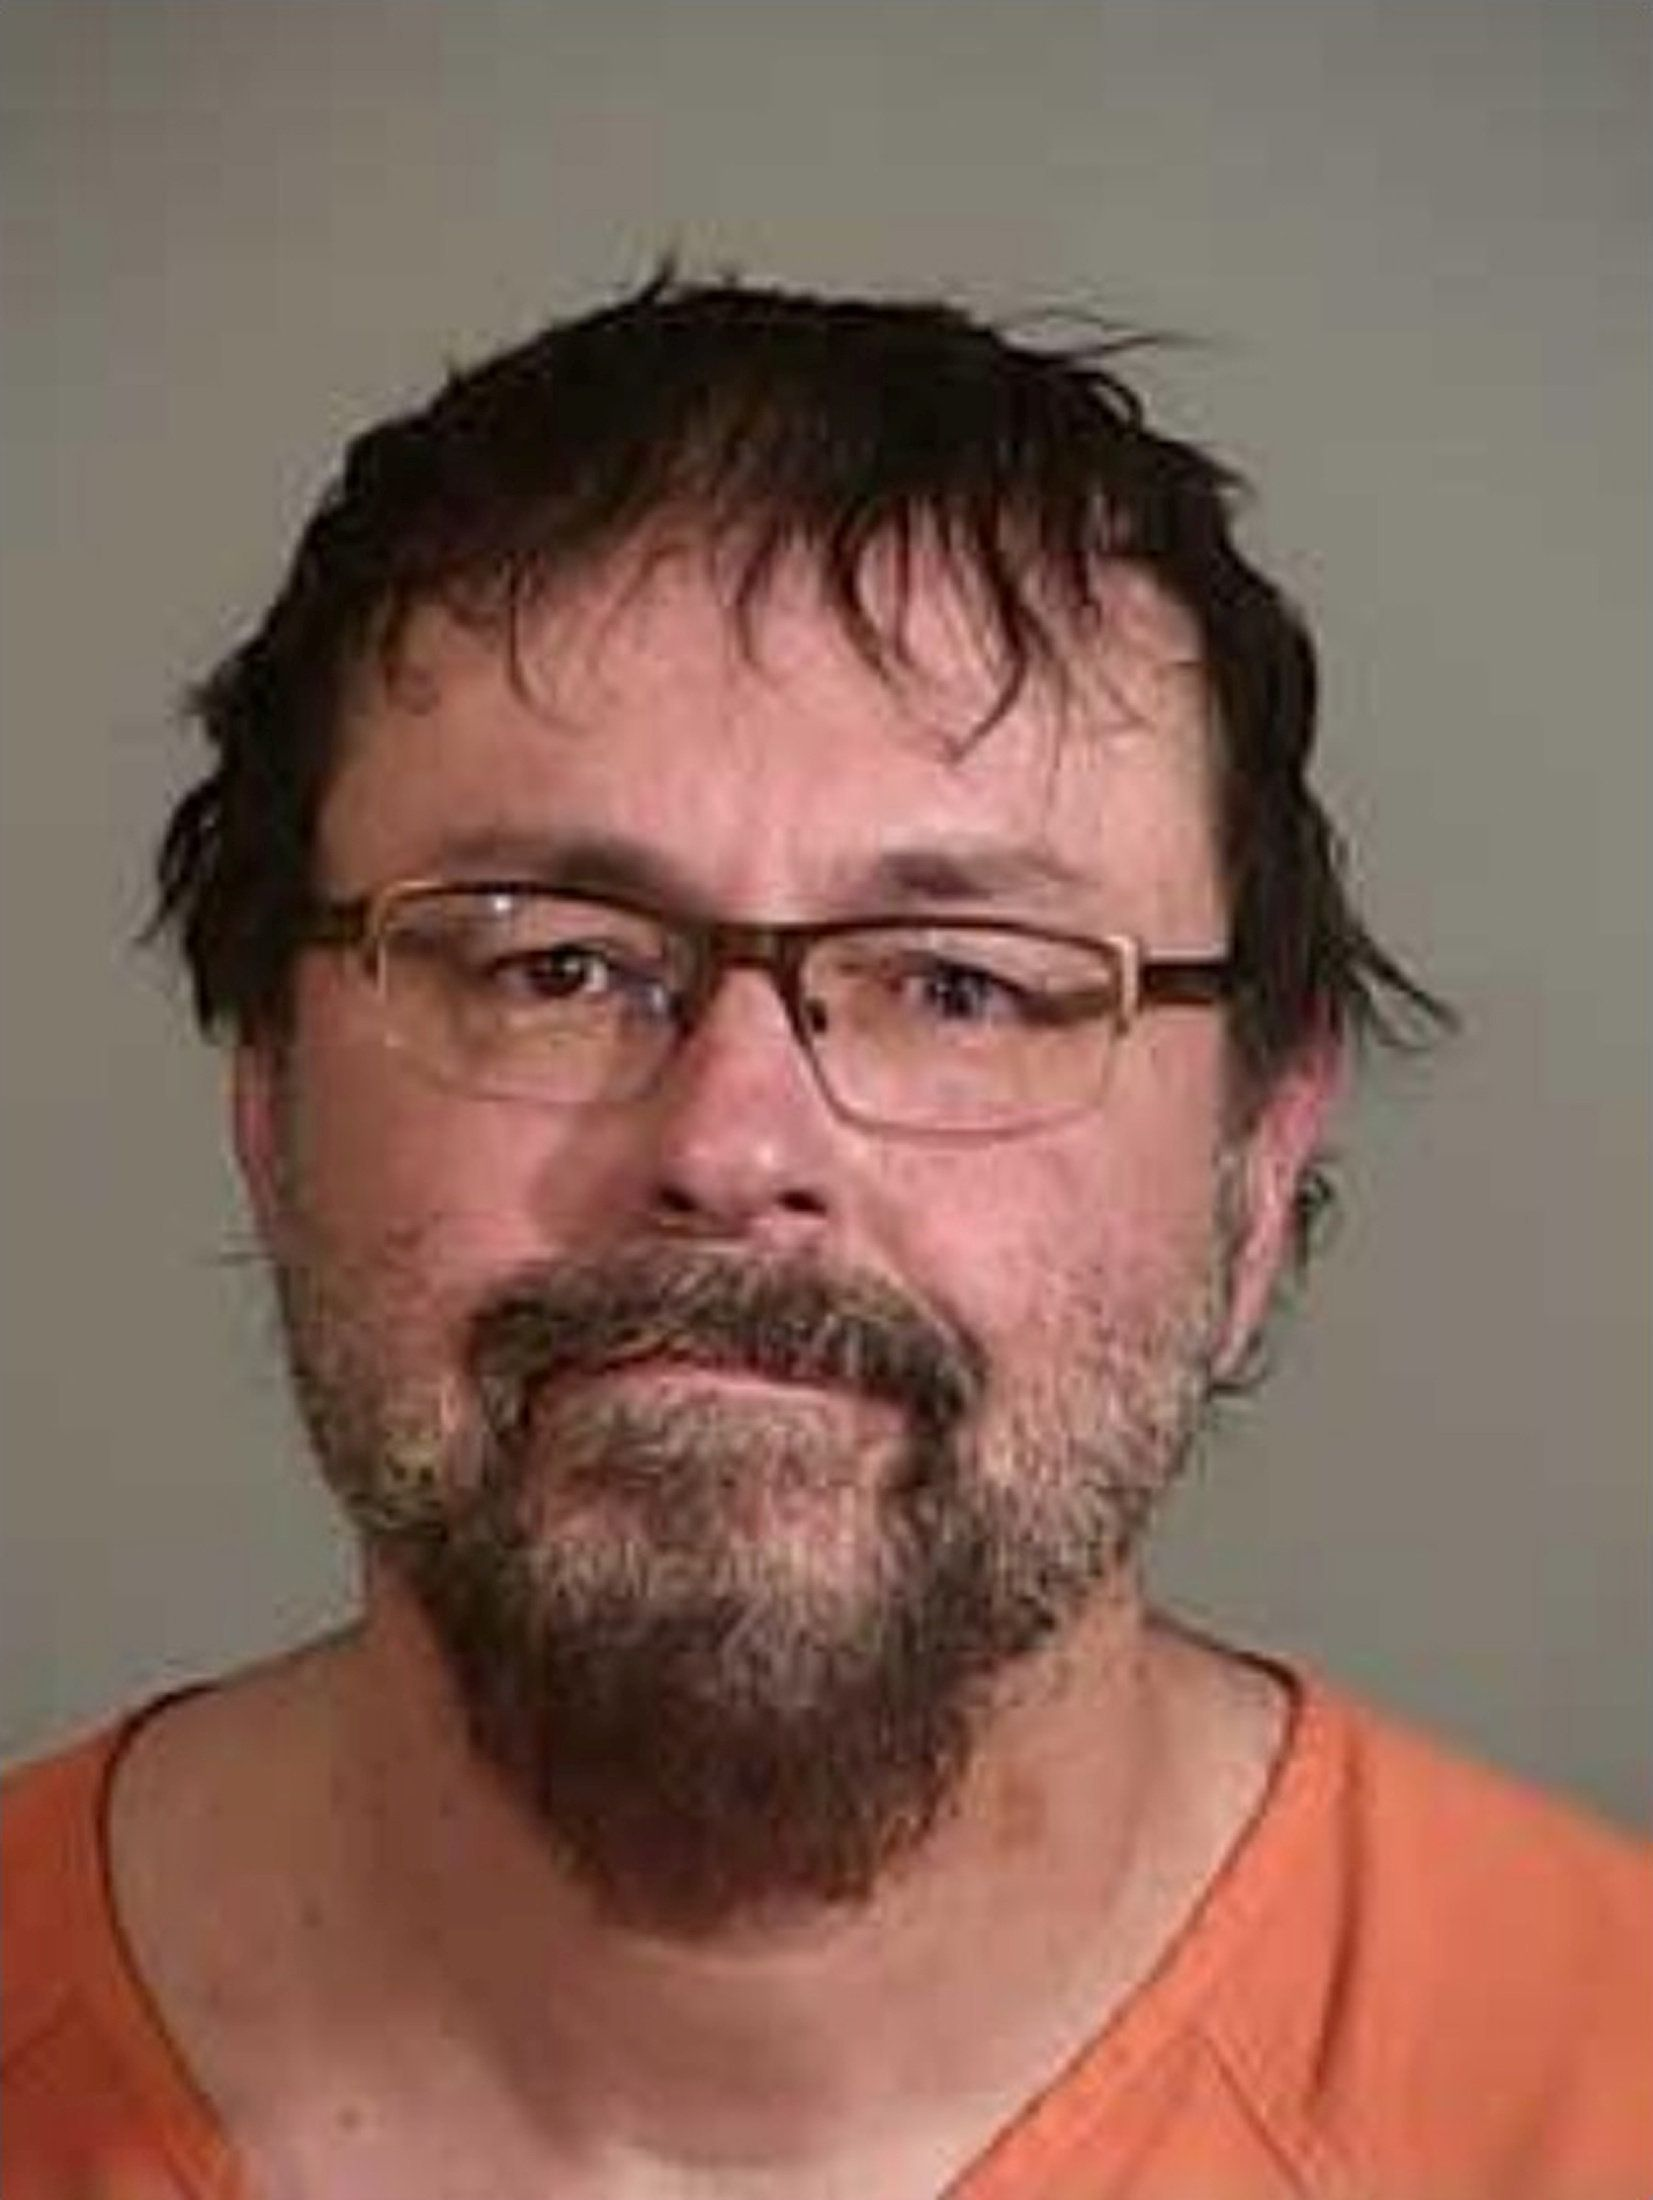 Tad Cummins is seen in this booking photo after his arrest by the Siskiyou County Sheriff's Department on April 20.